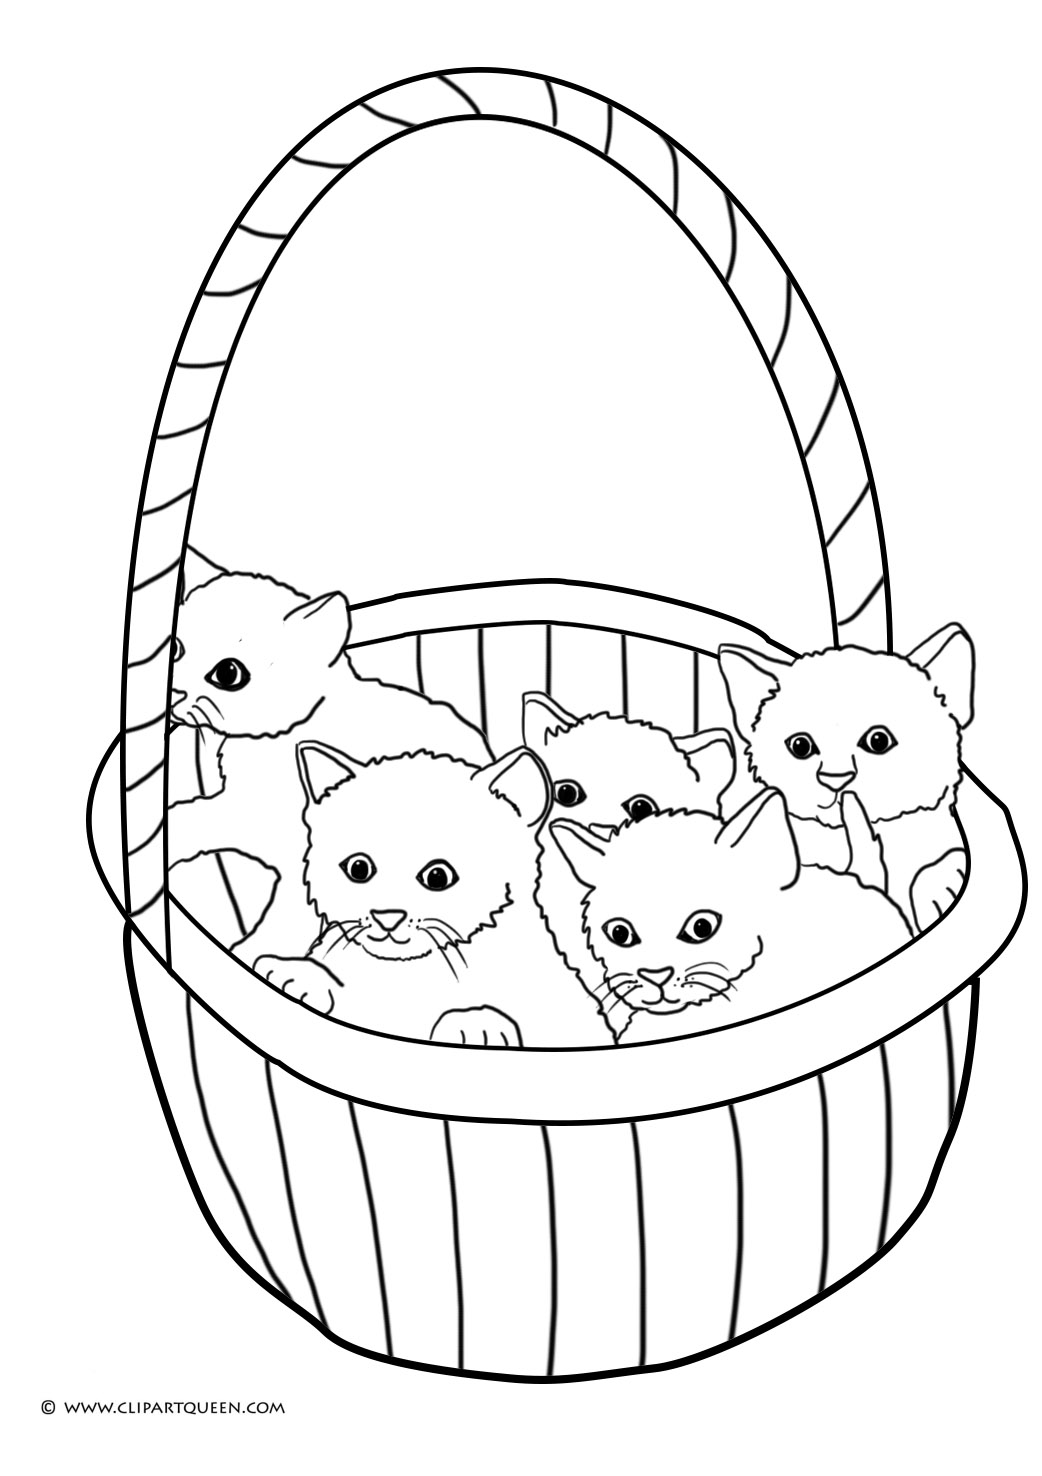 Cat coloring pages for Coloring pages of kittens to print